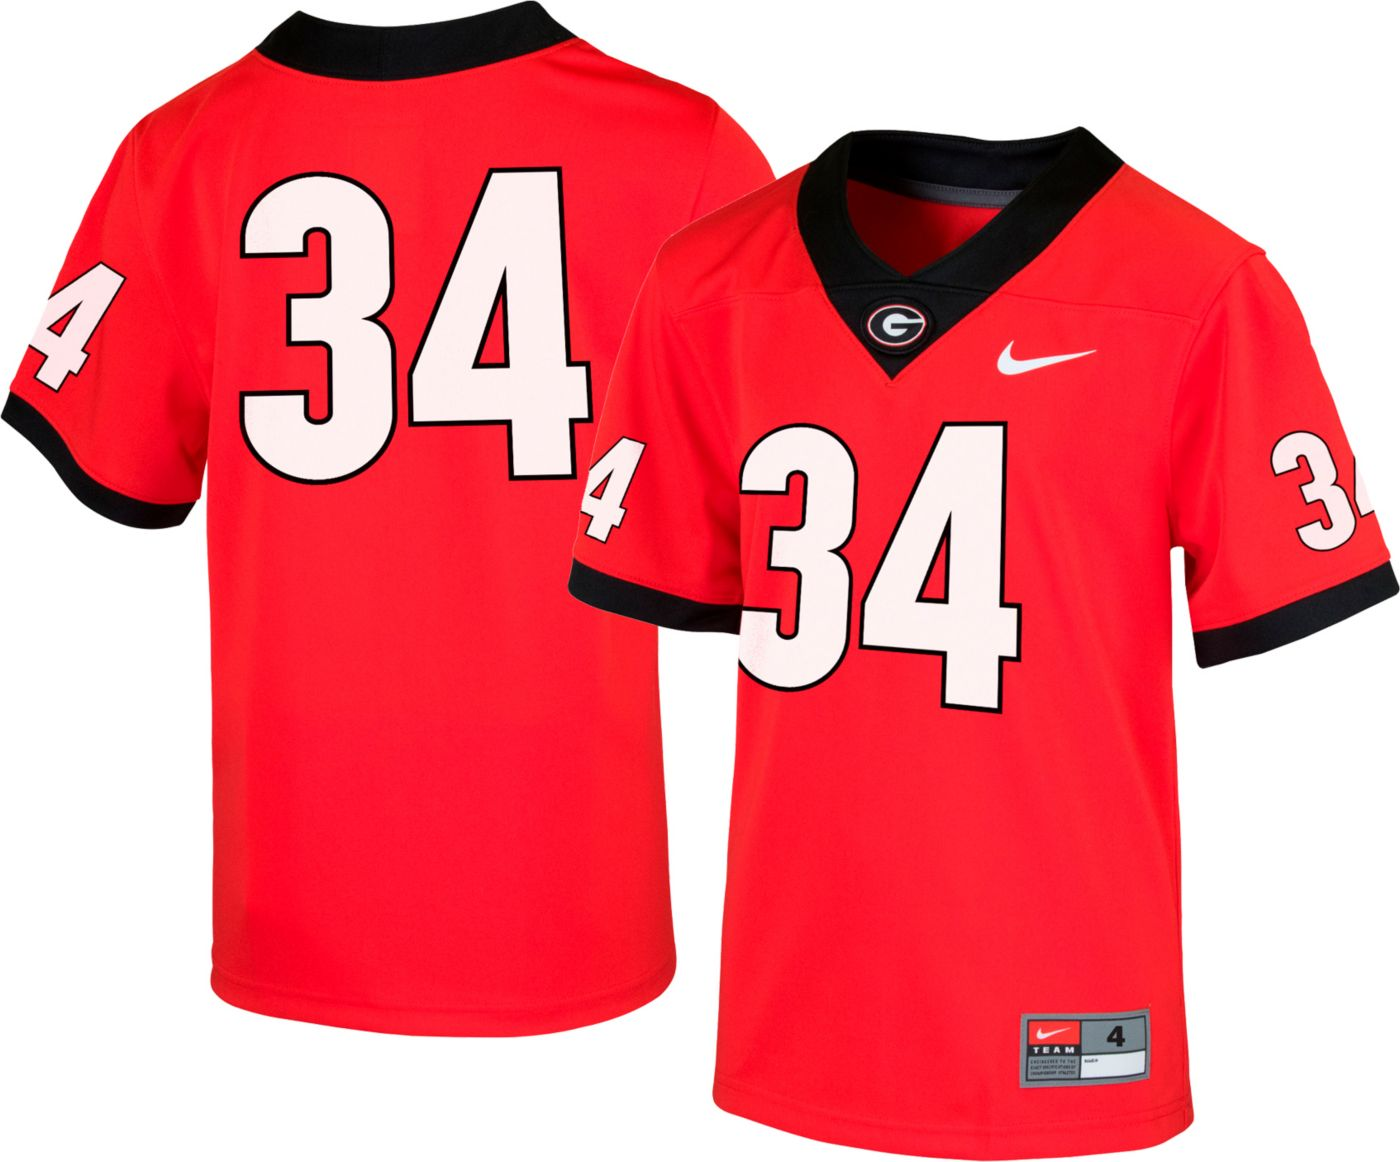 Nike Boys' Georgia Bulldogs #34 Red Replica Football Jersey